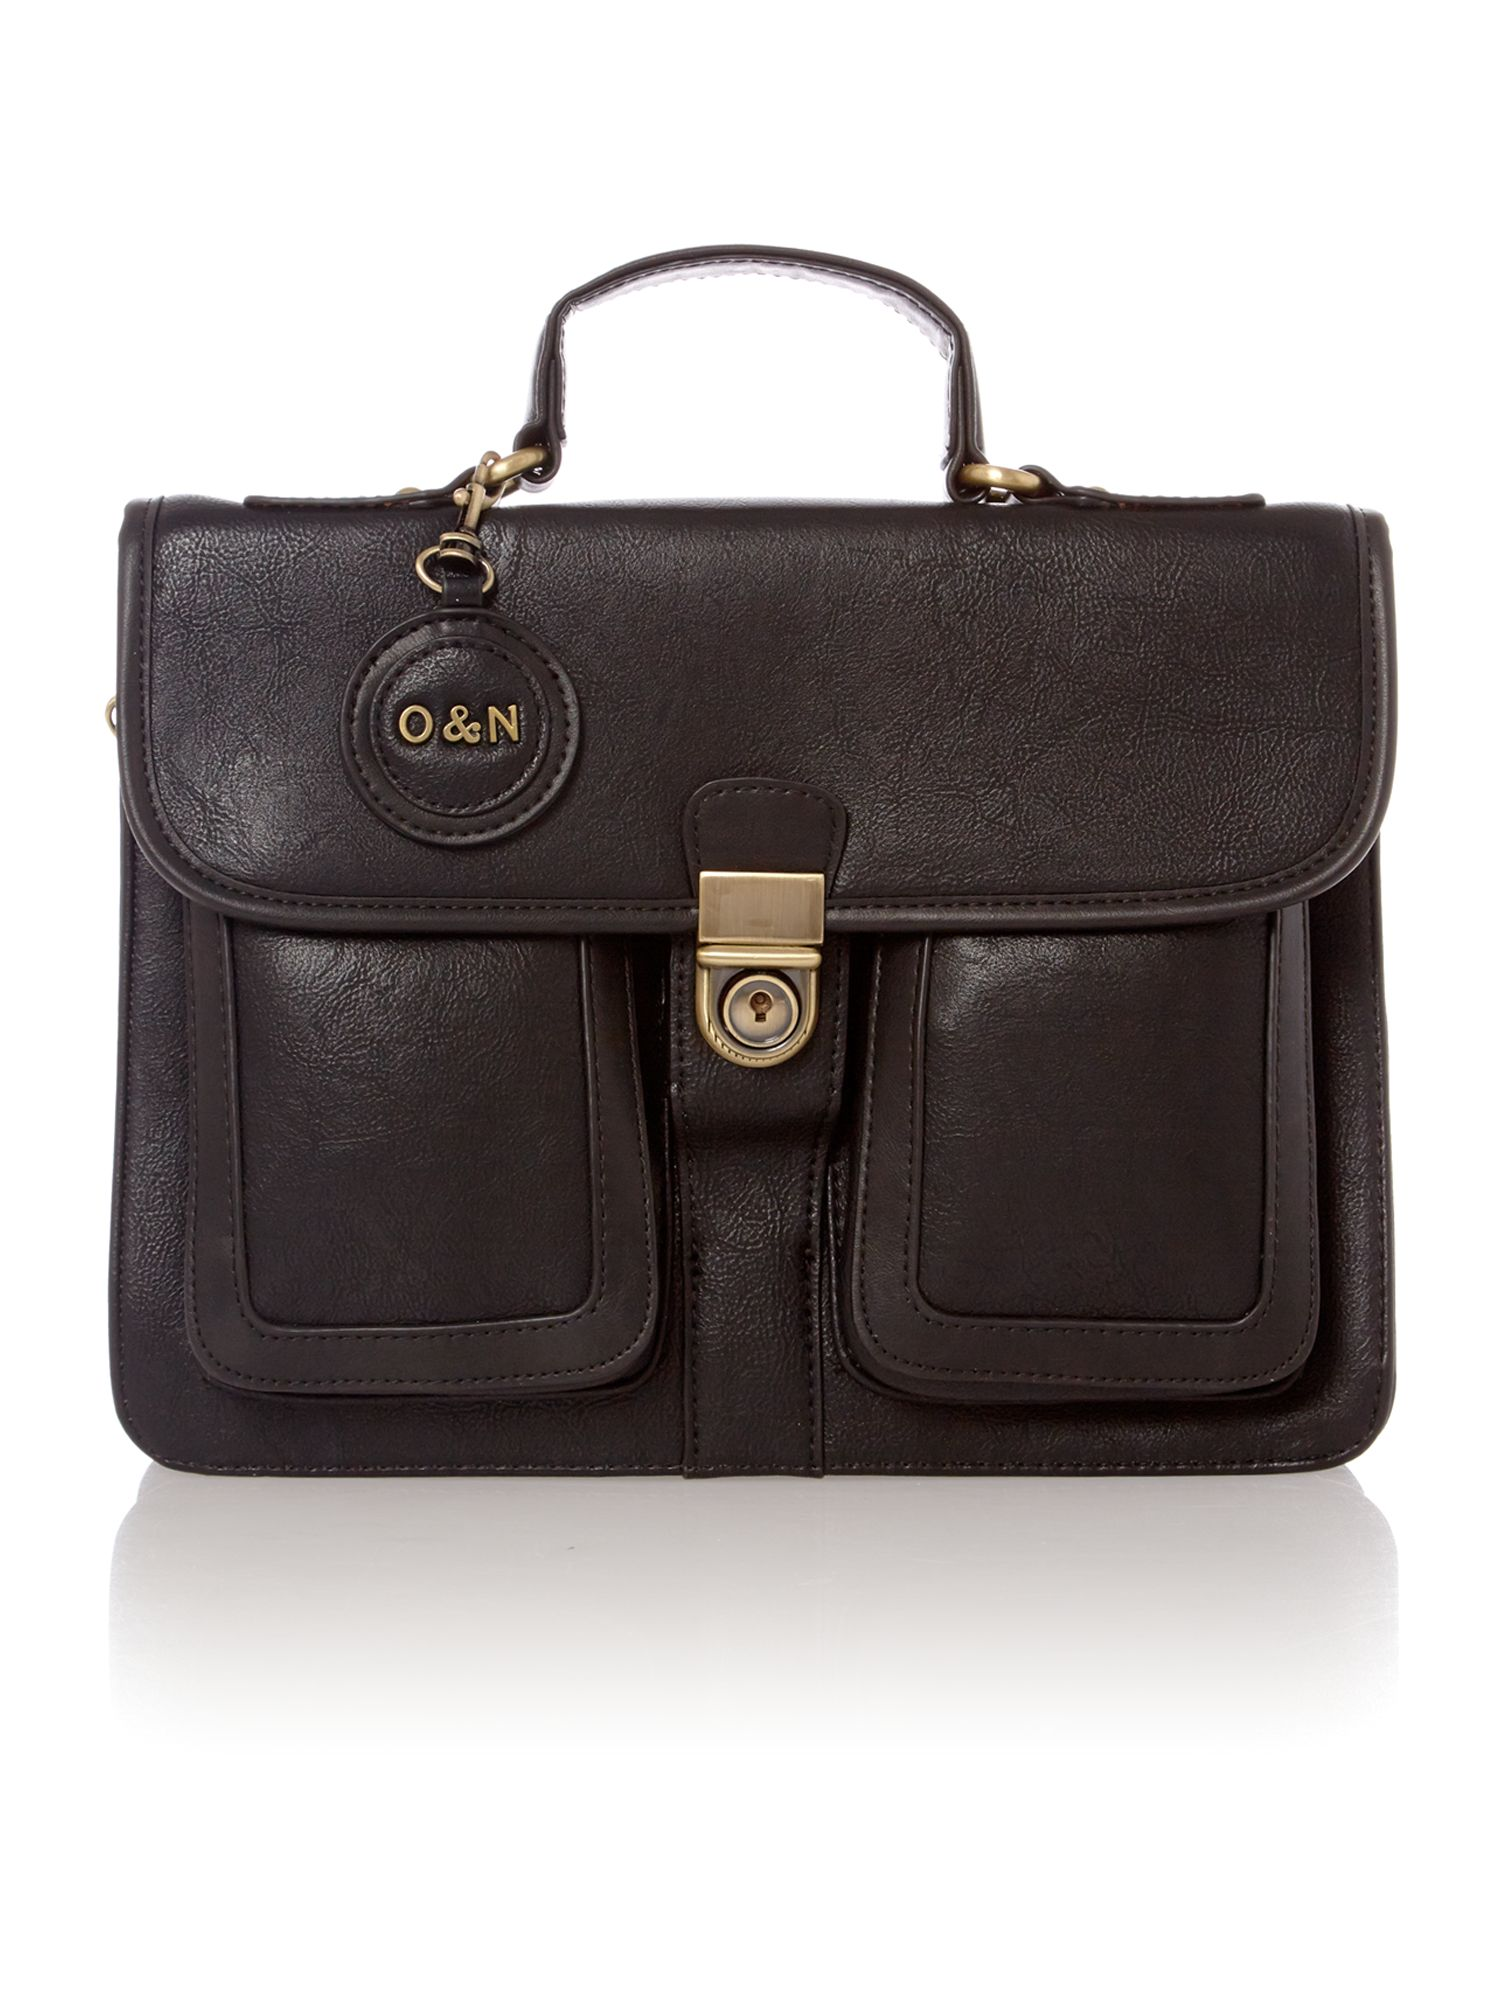 Lara black satchel bag